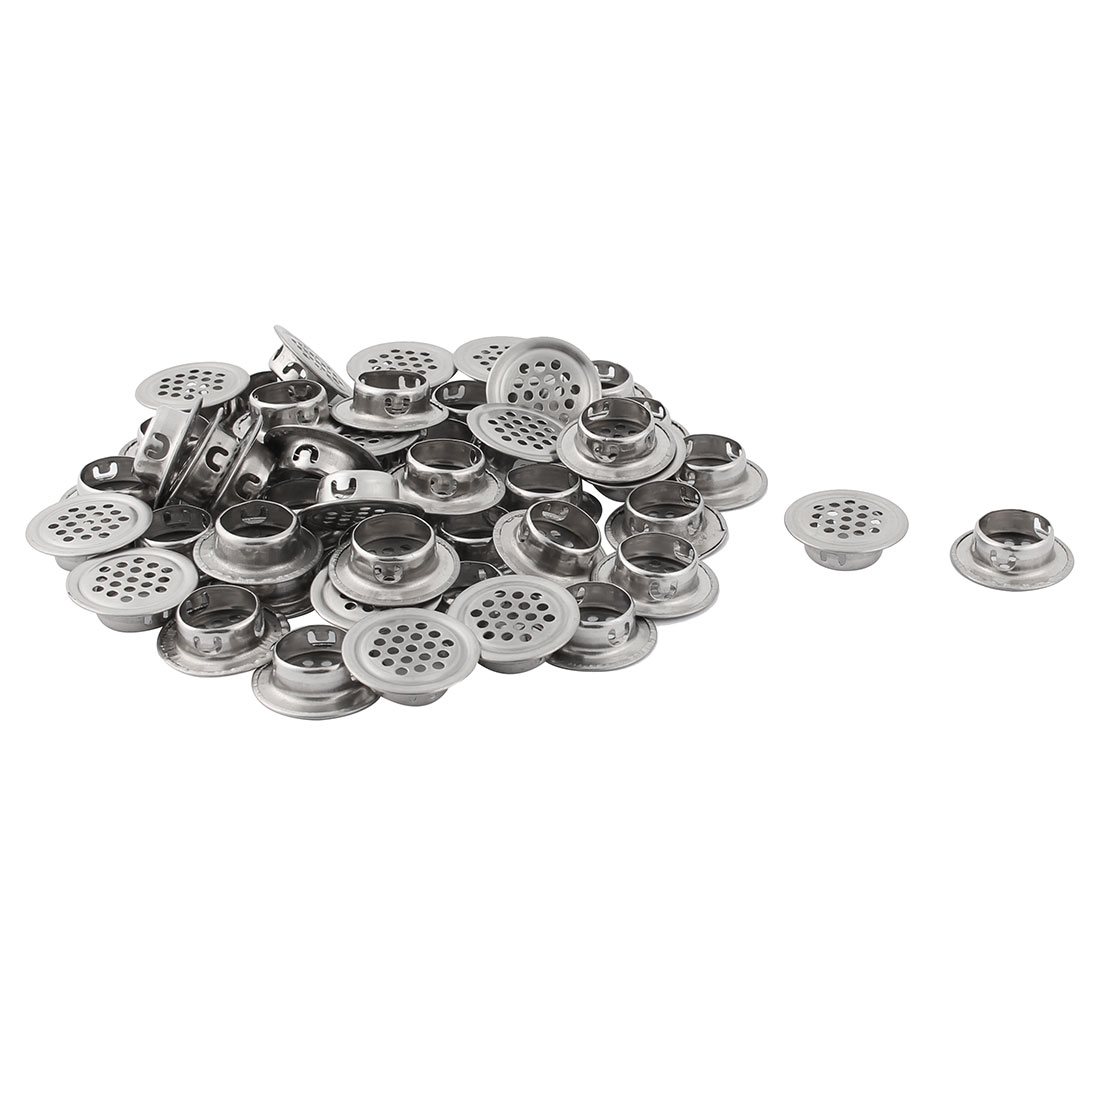 Household Stainless Steel Perforated Furniture Mesh Air Vents 19mm Dia 60pcs